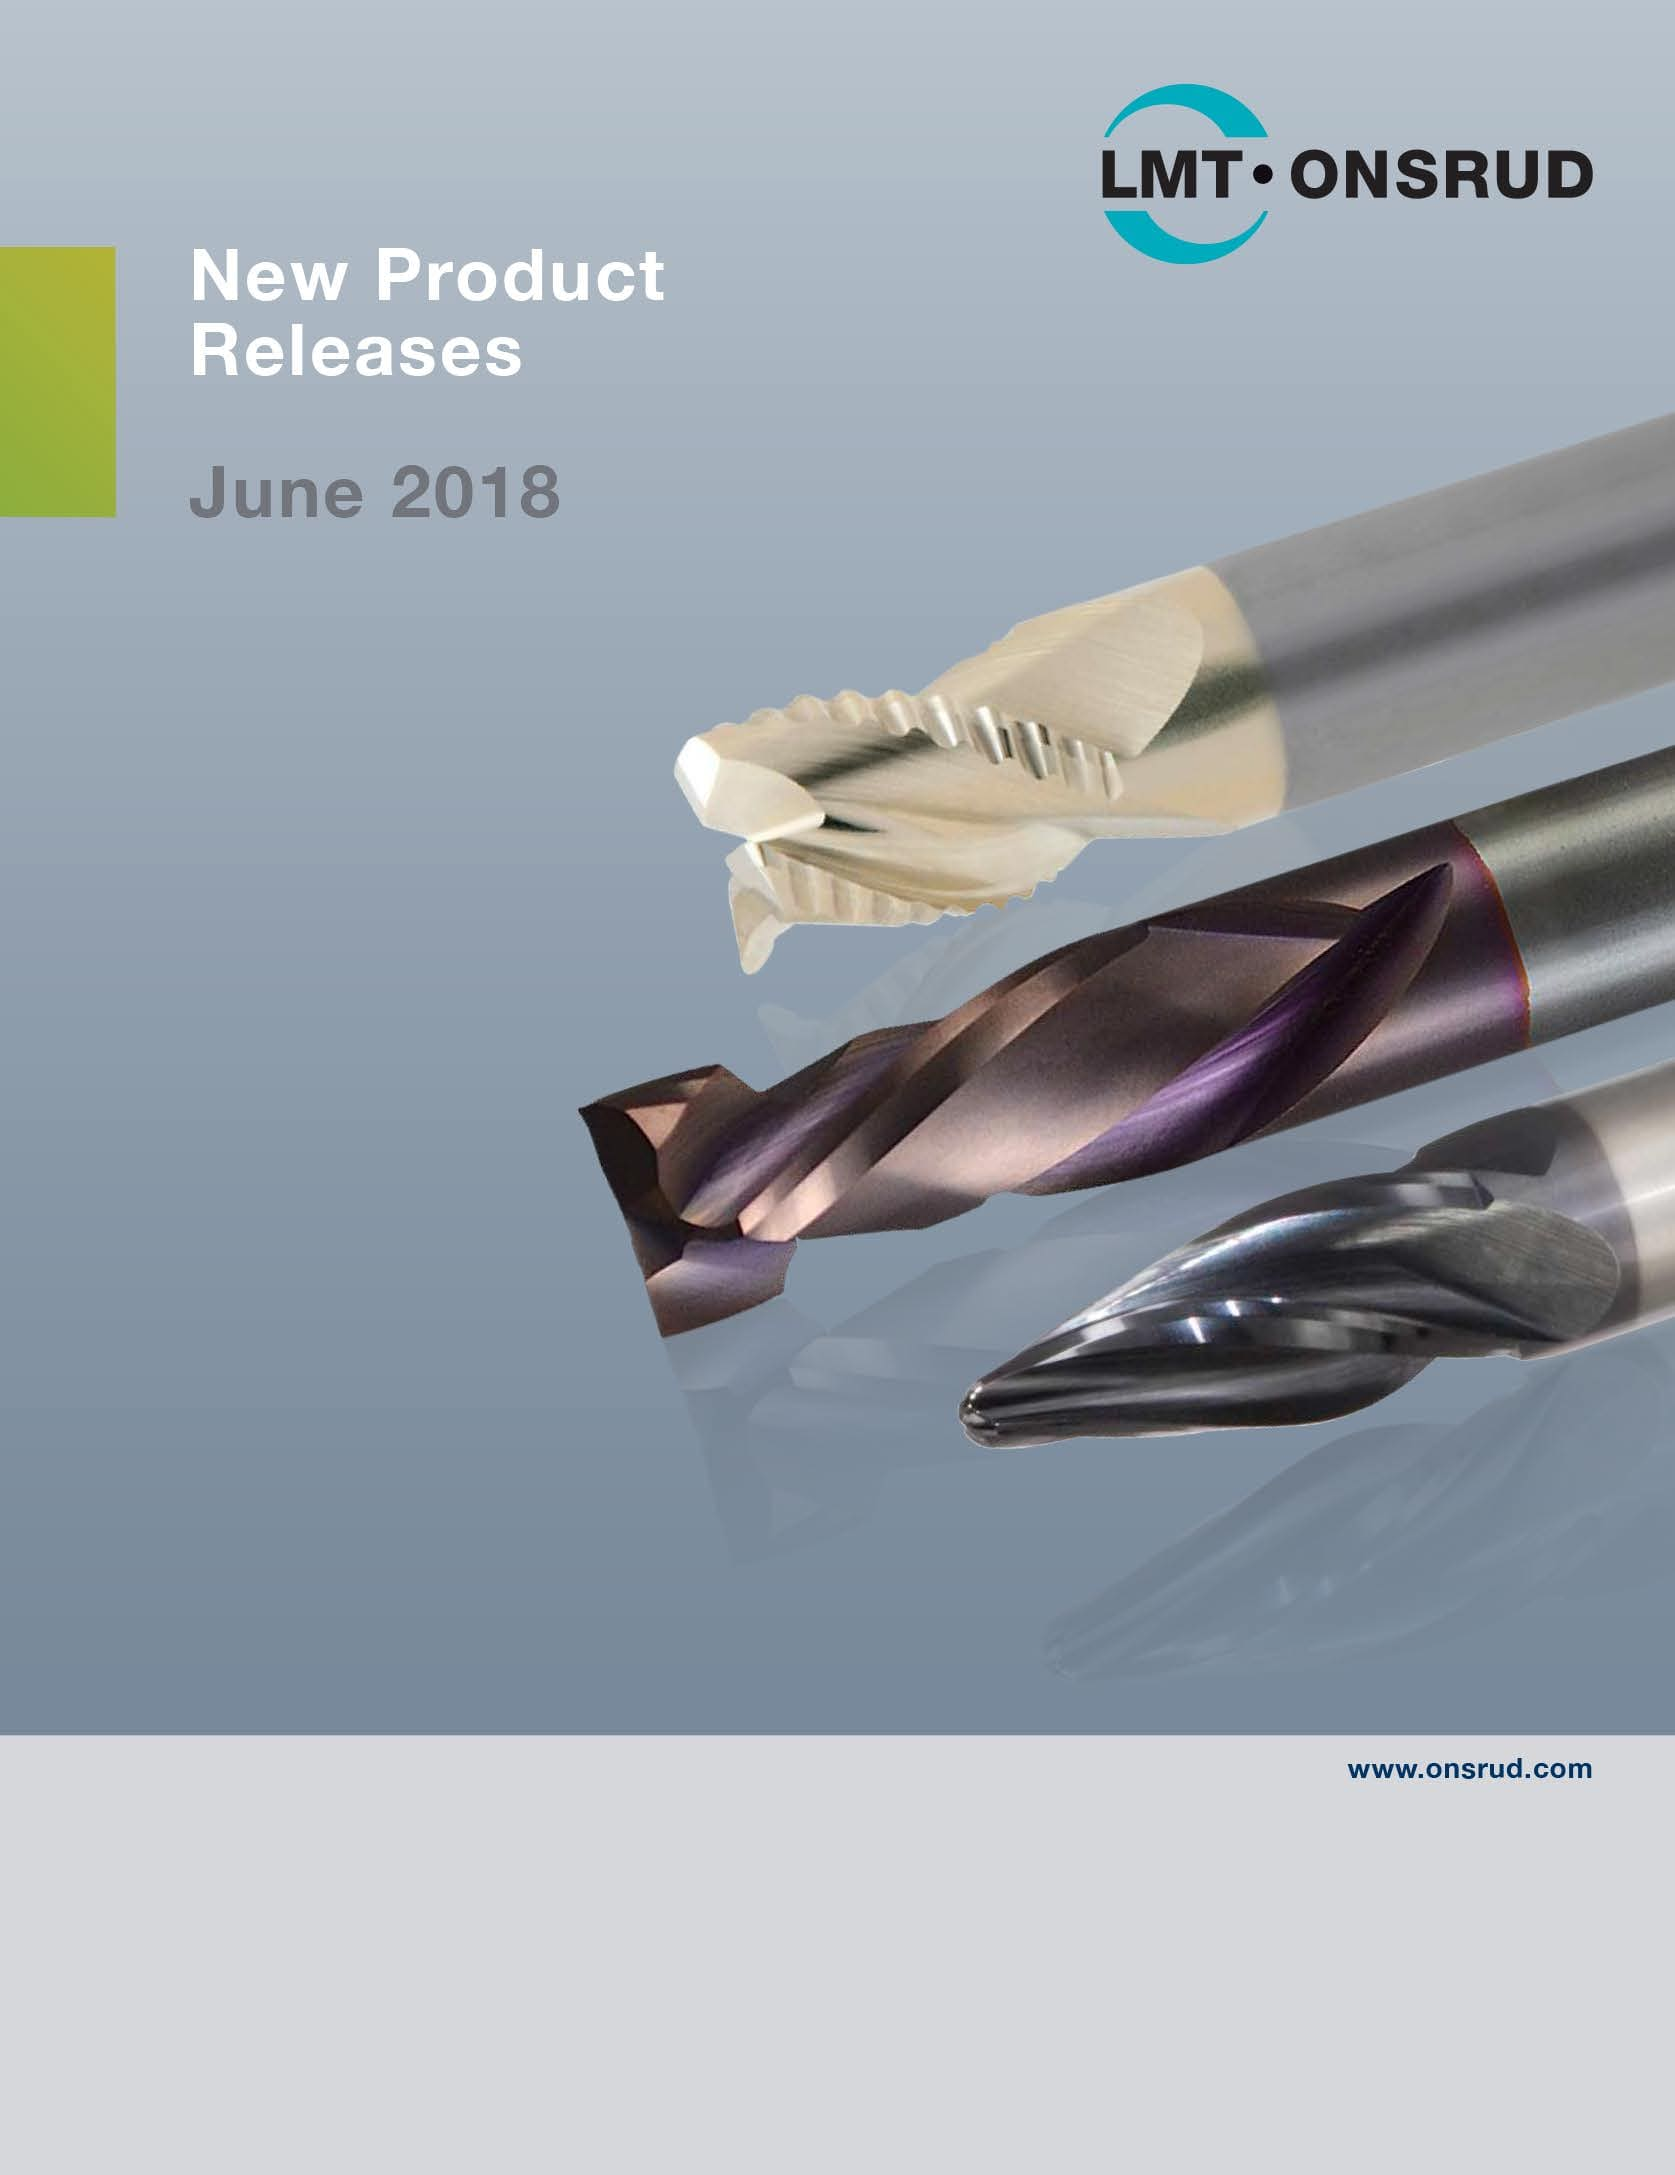 LMT Onsrud - New Product Releases June 2018